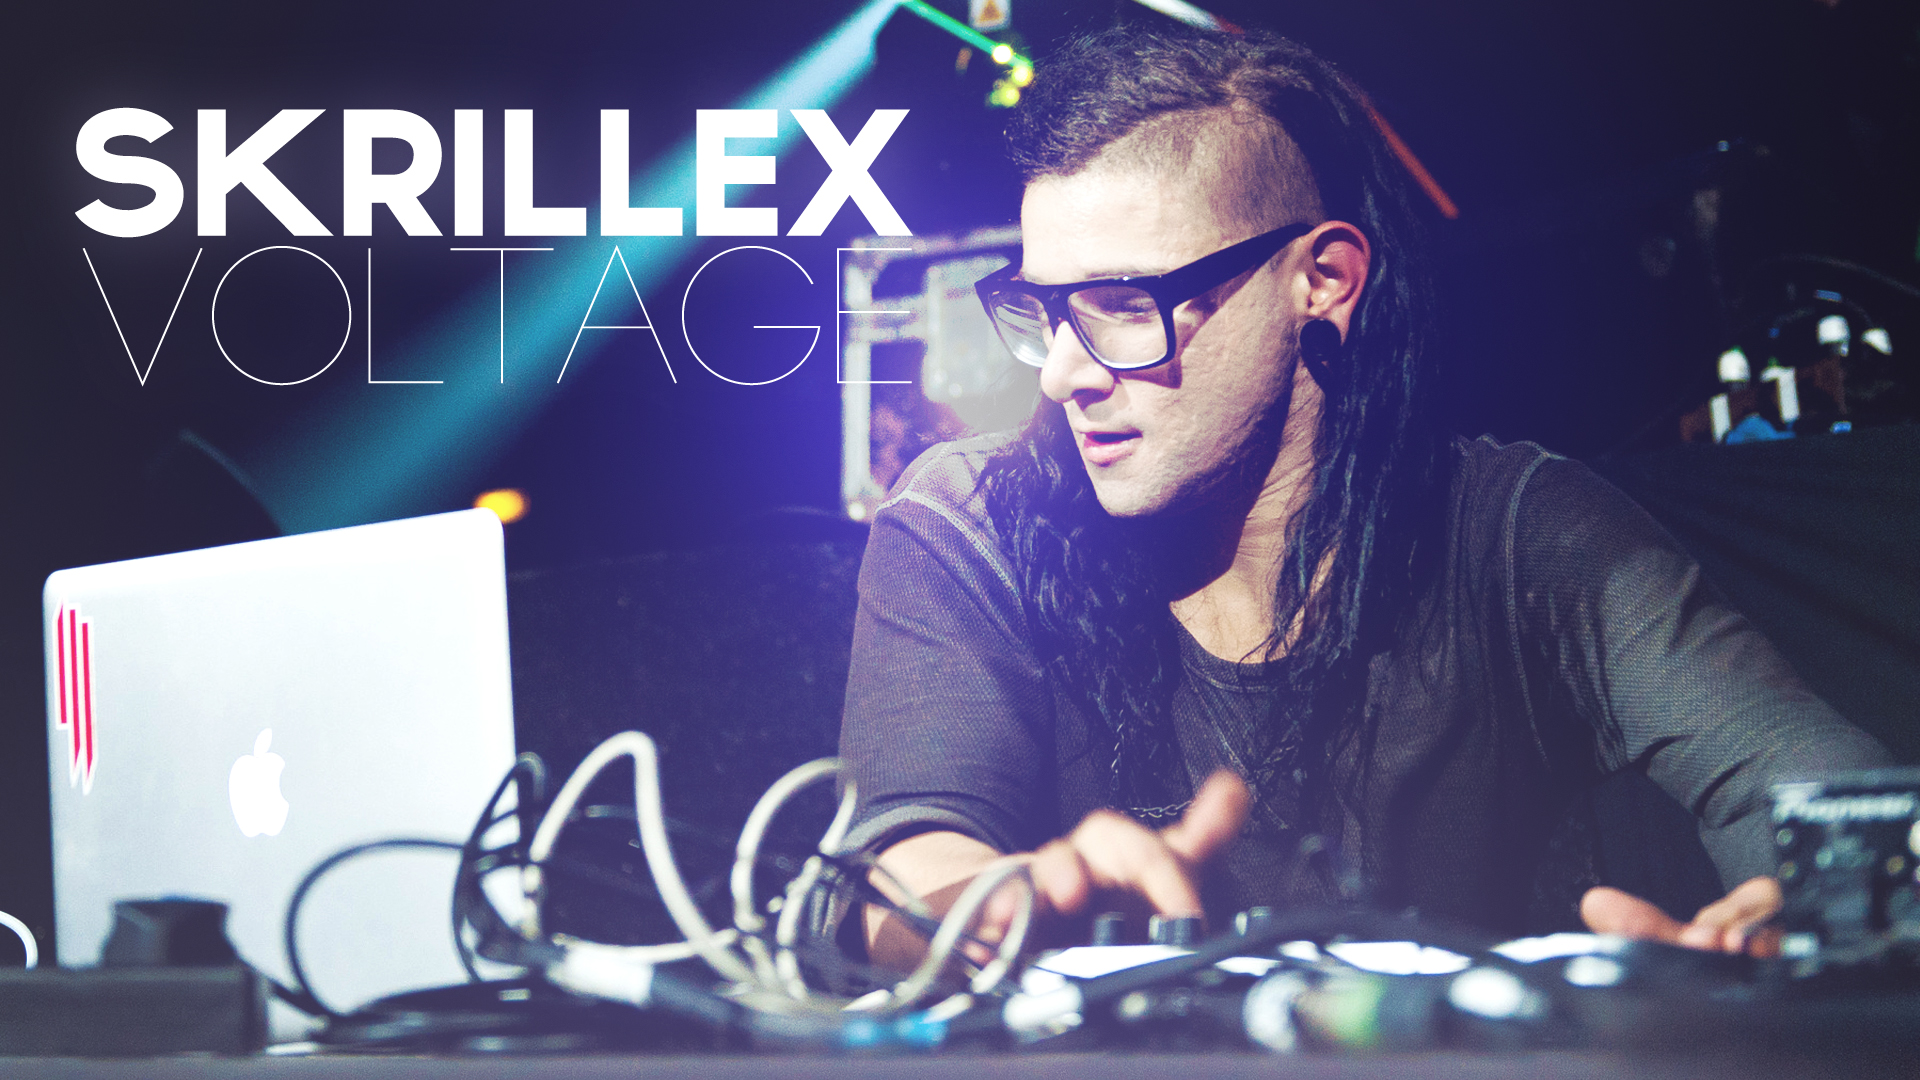 Skrillex Wallpaper